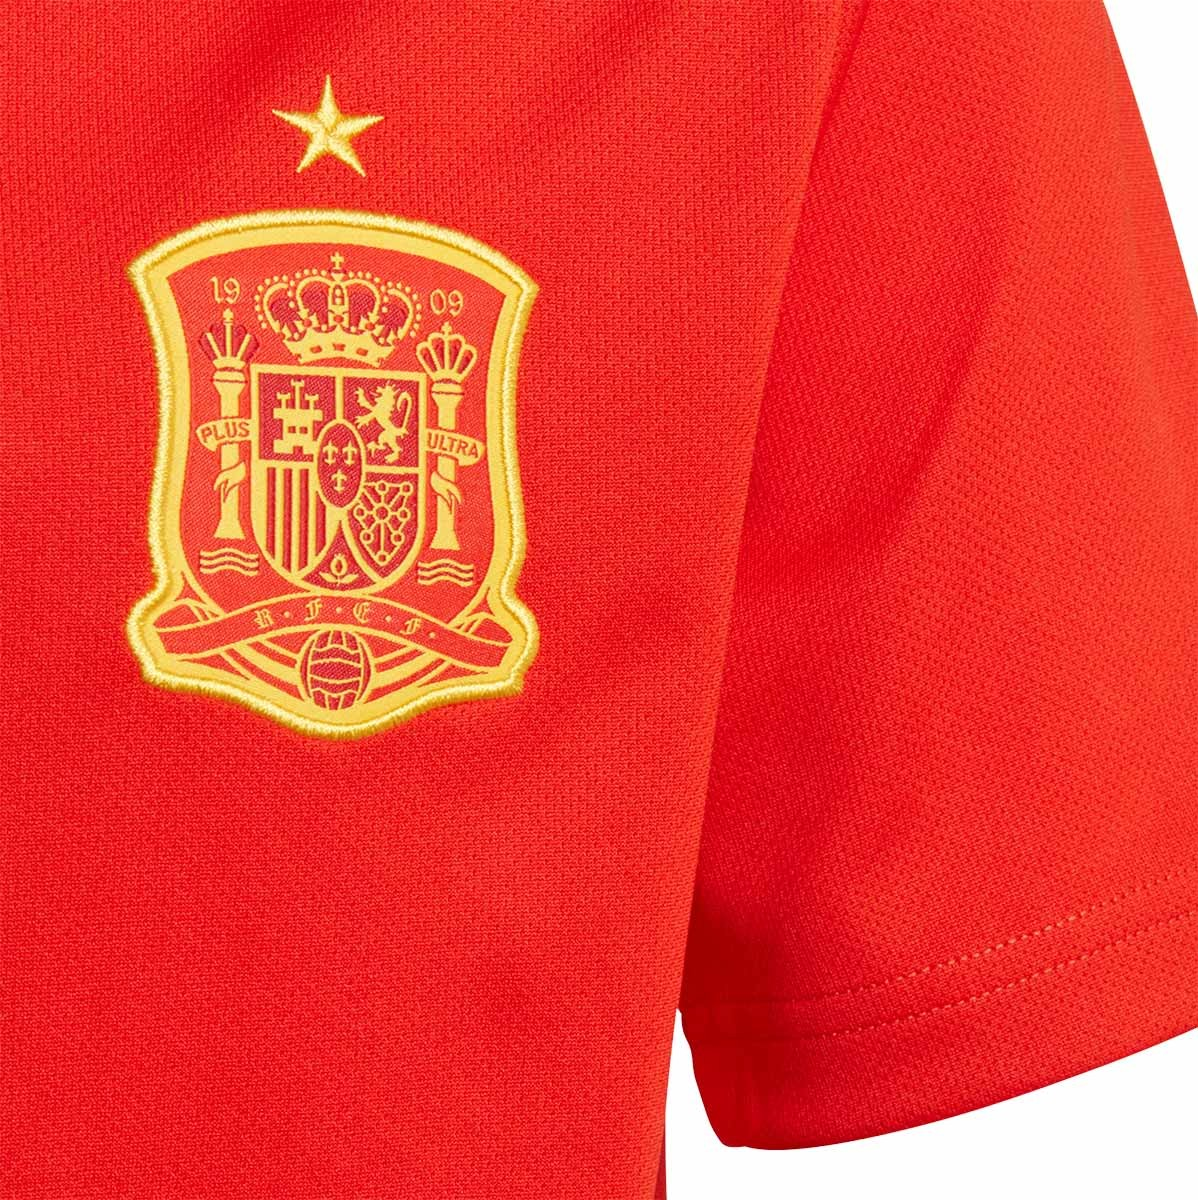 d7622c2f6d0 Jersey adidas Kids Spain 2017-2018 Home Red-Gold - Football store Fútbol  Emotion